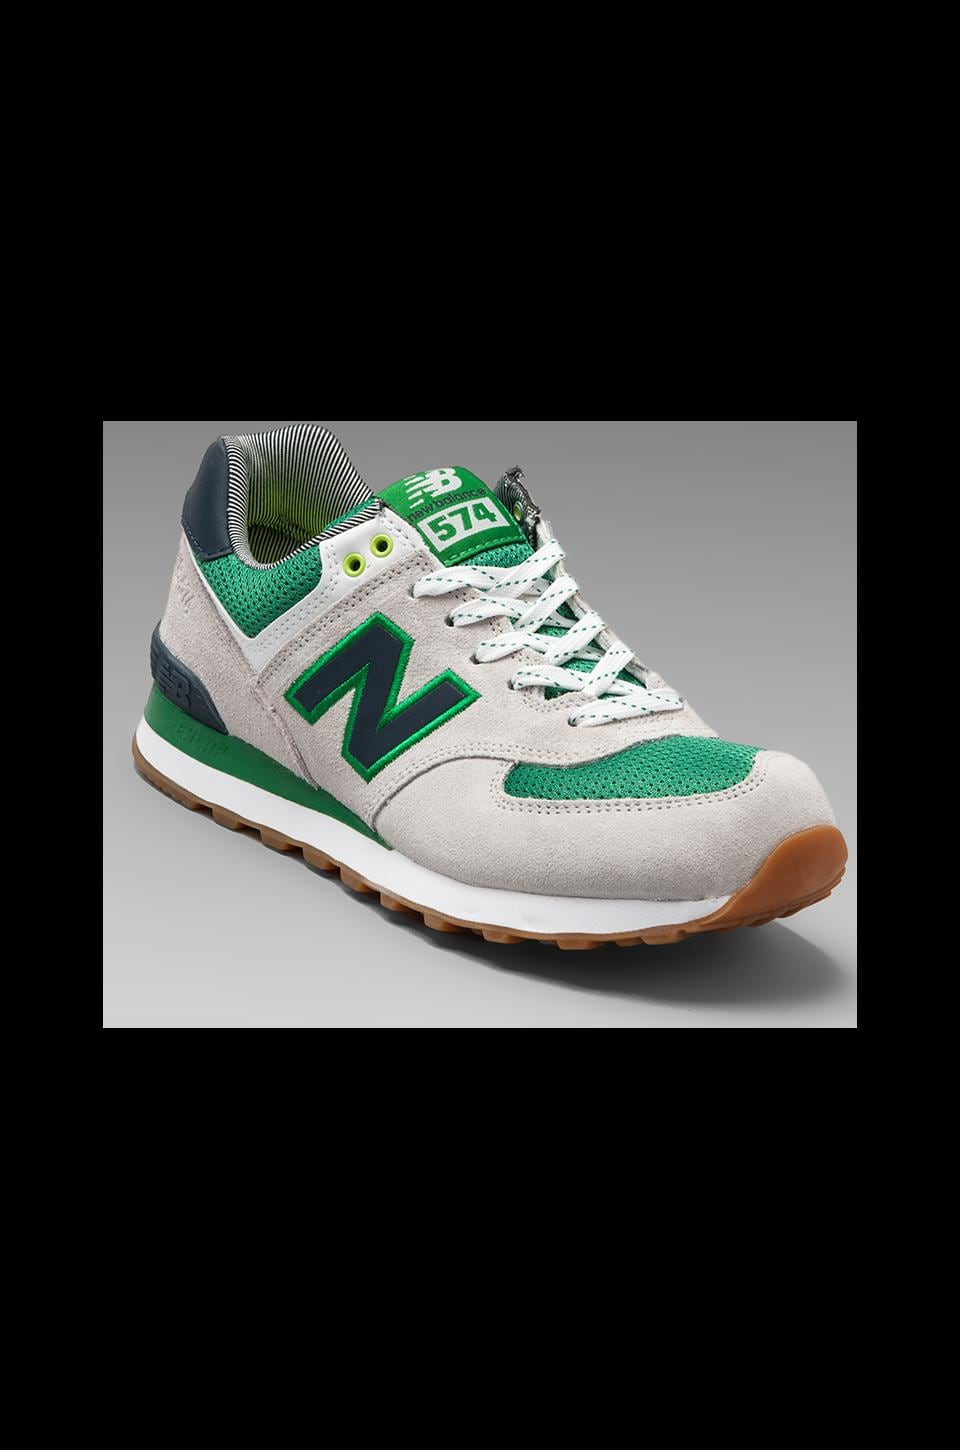 New Balance Yacht Club ML574 in Grey/Green/Navy